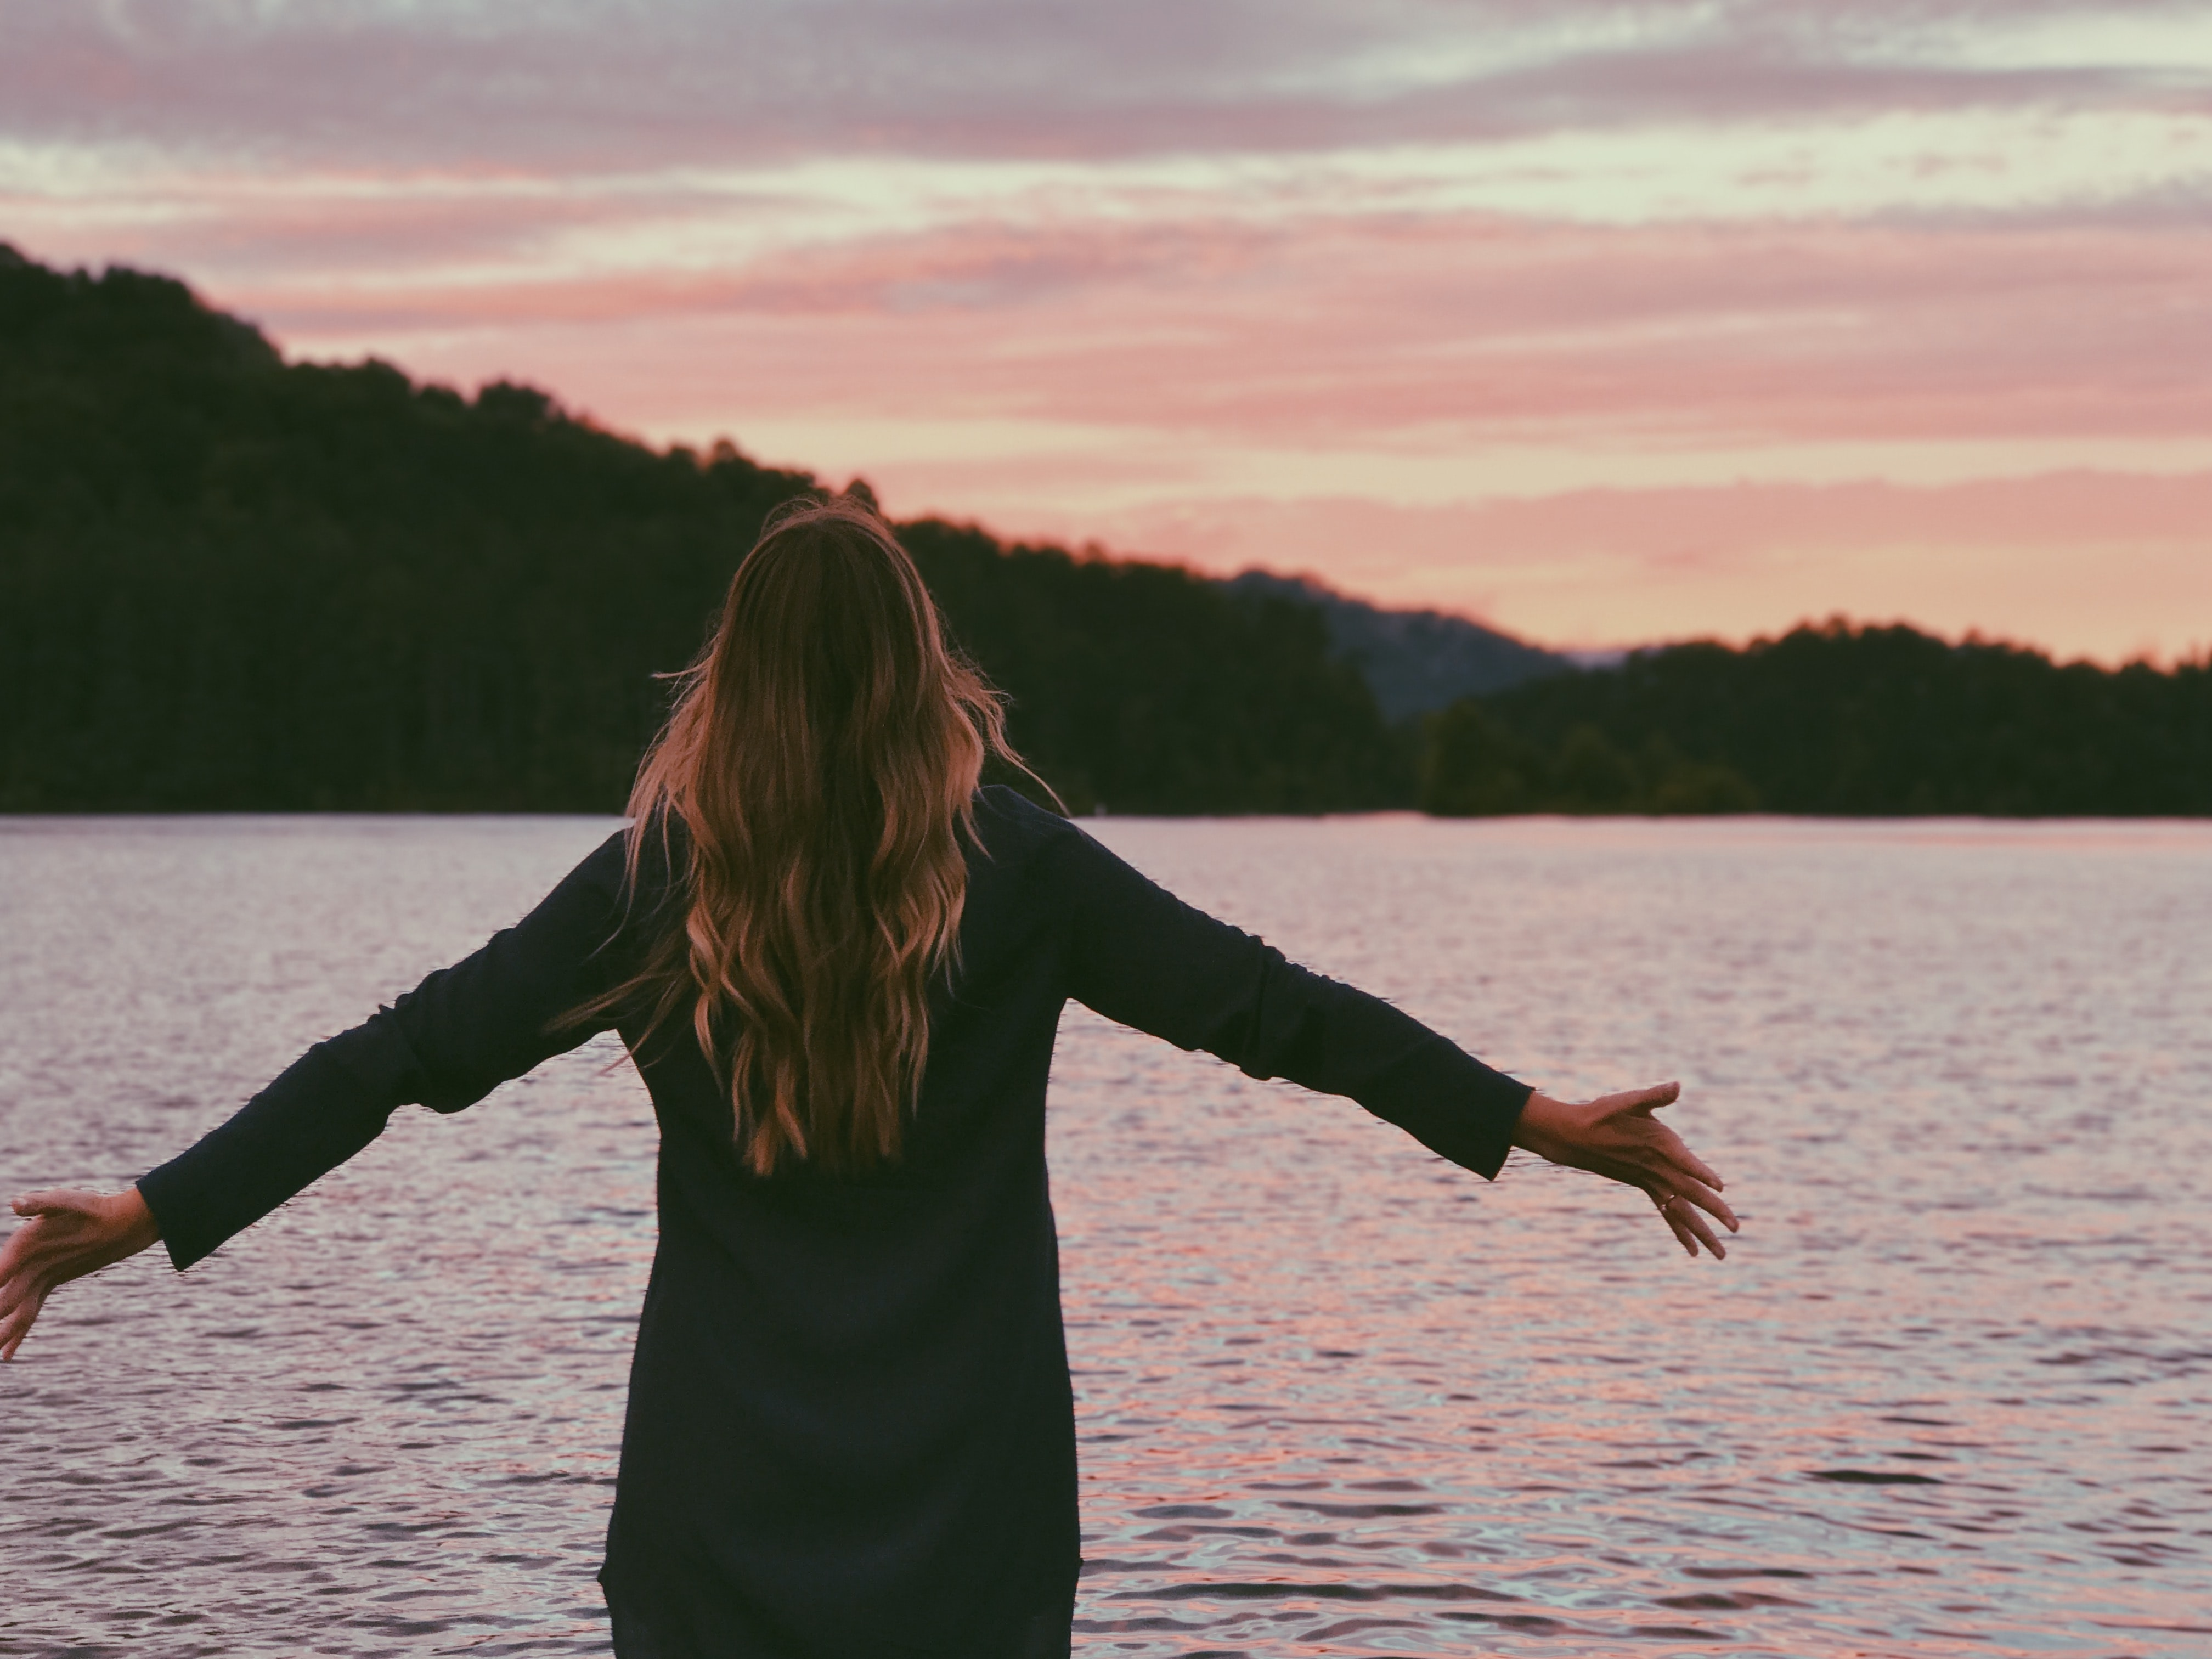 A woman faces a body of water, arms outstretched, at sunset